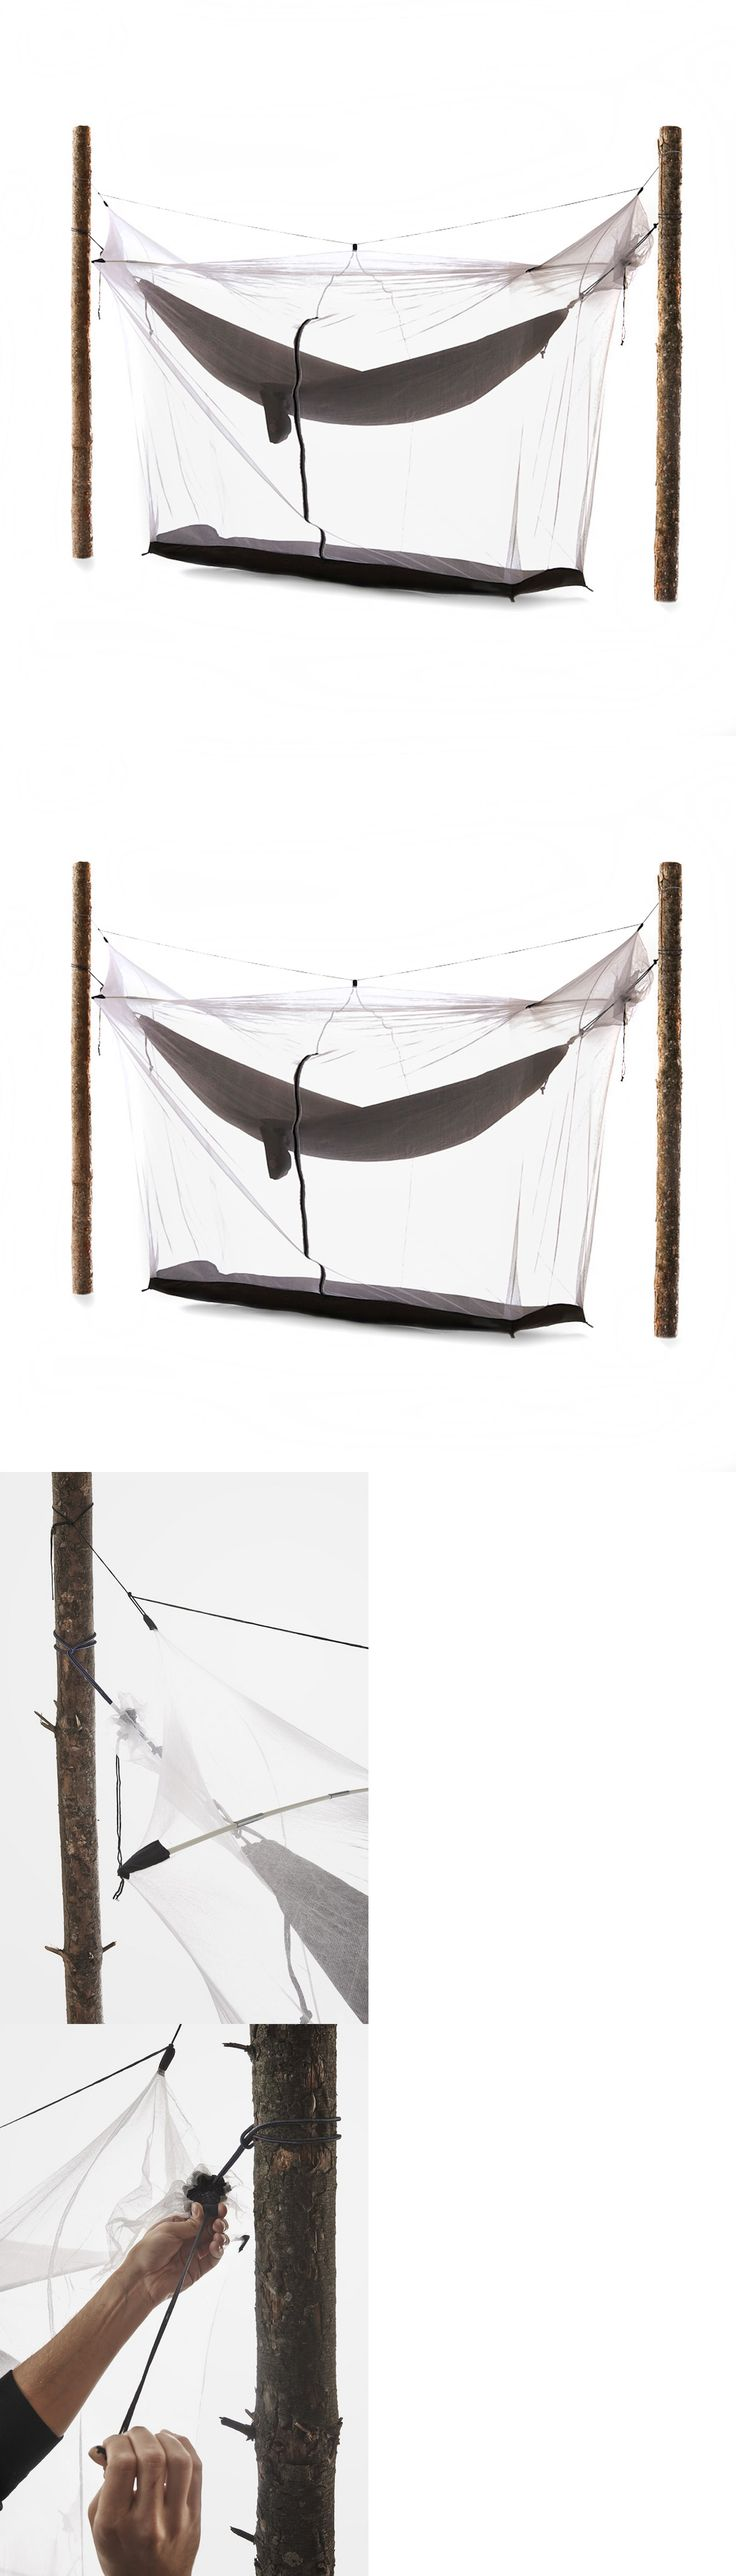 Insect Nets and Repellents 65965: Grand Trunk Hammock Mozzy Netting Outdoor Mosquito Protection Camping BUY IT NOW ONLY: $59.49